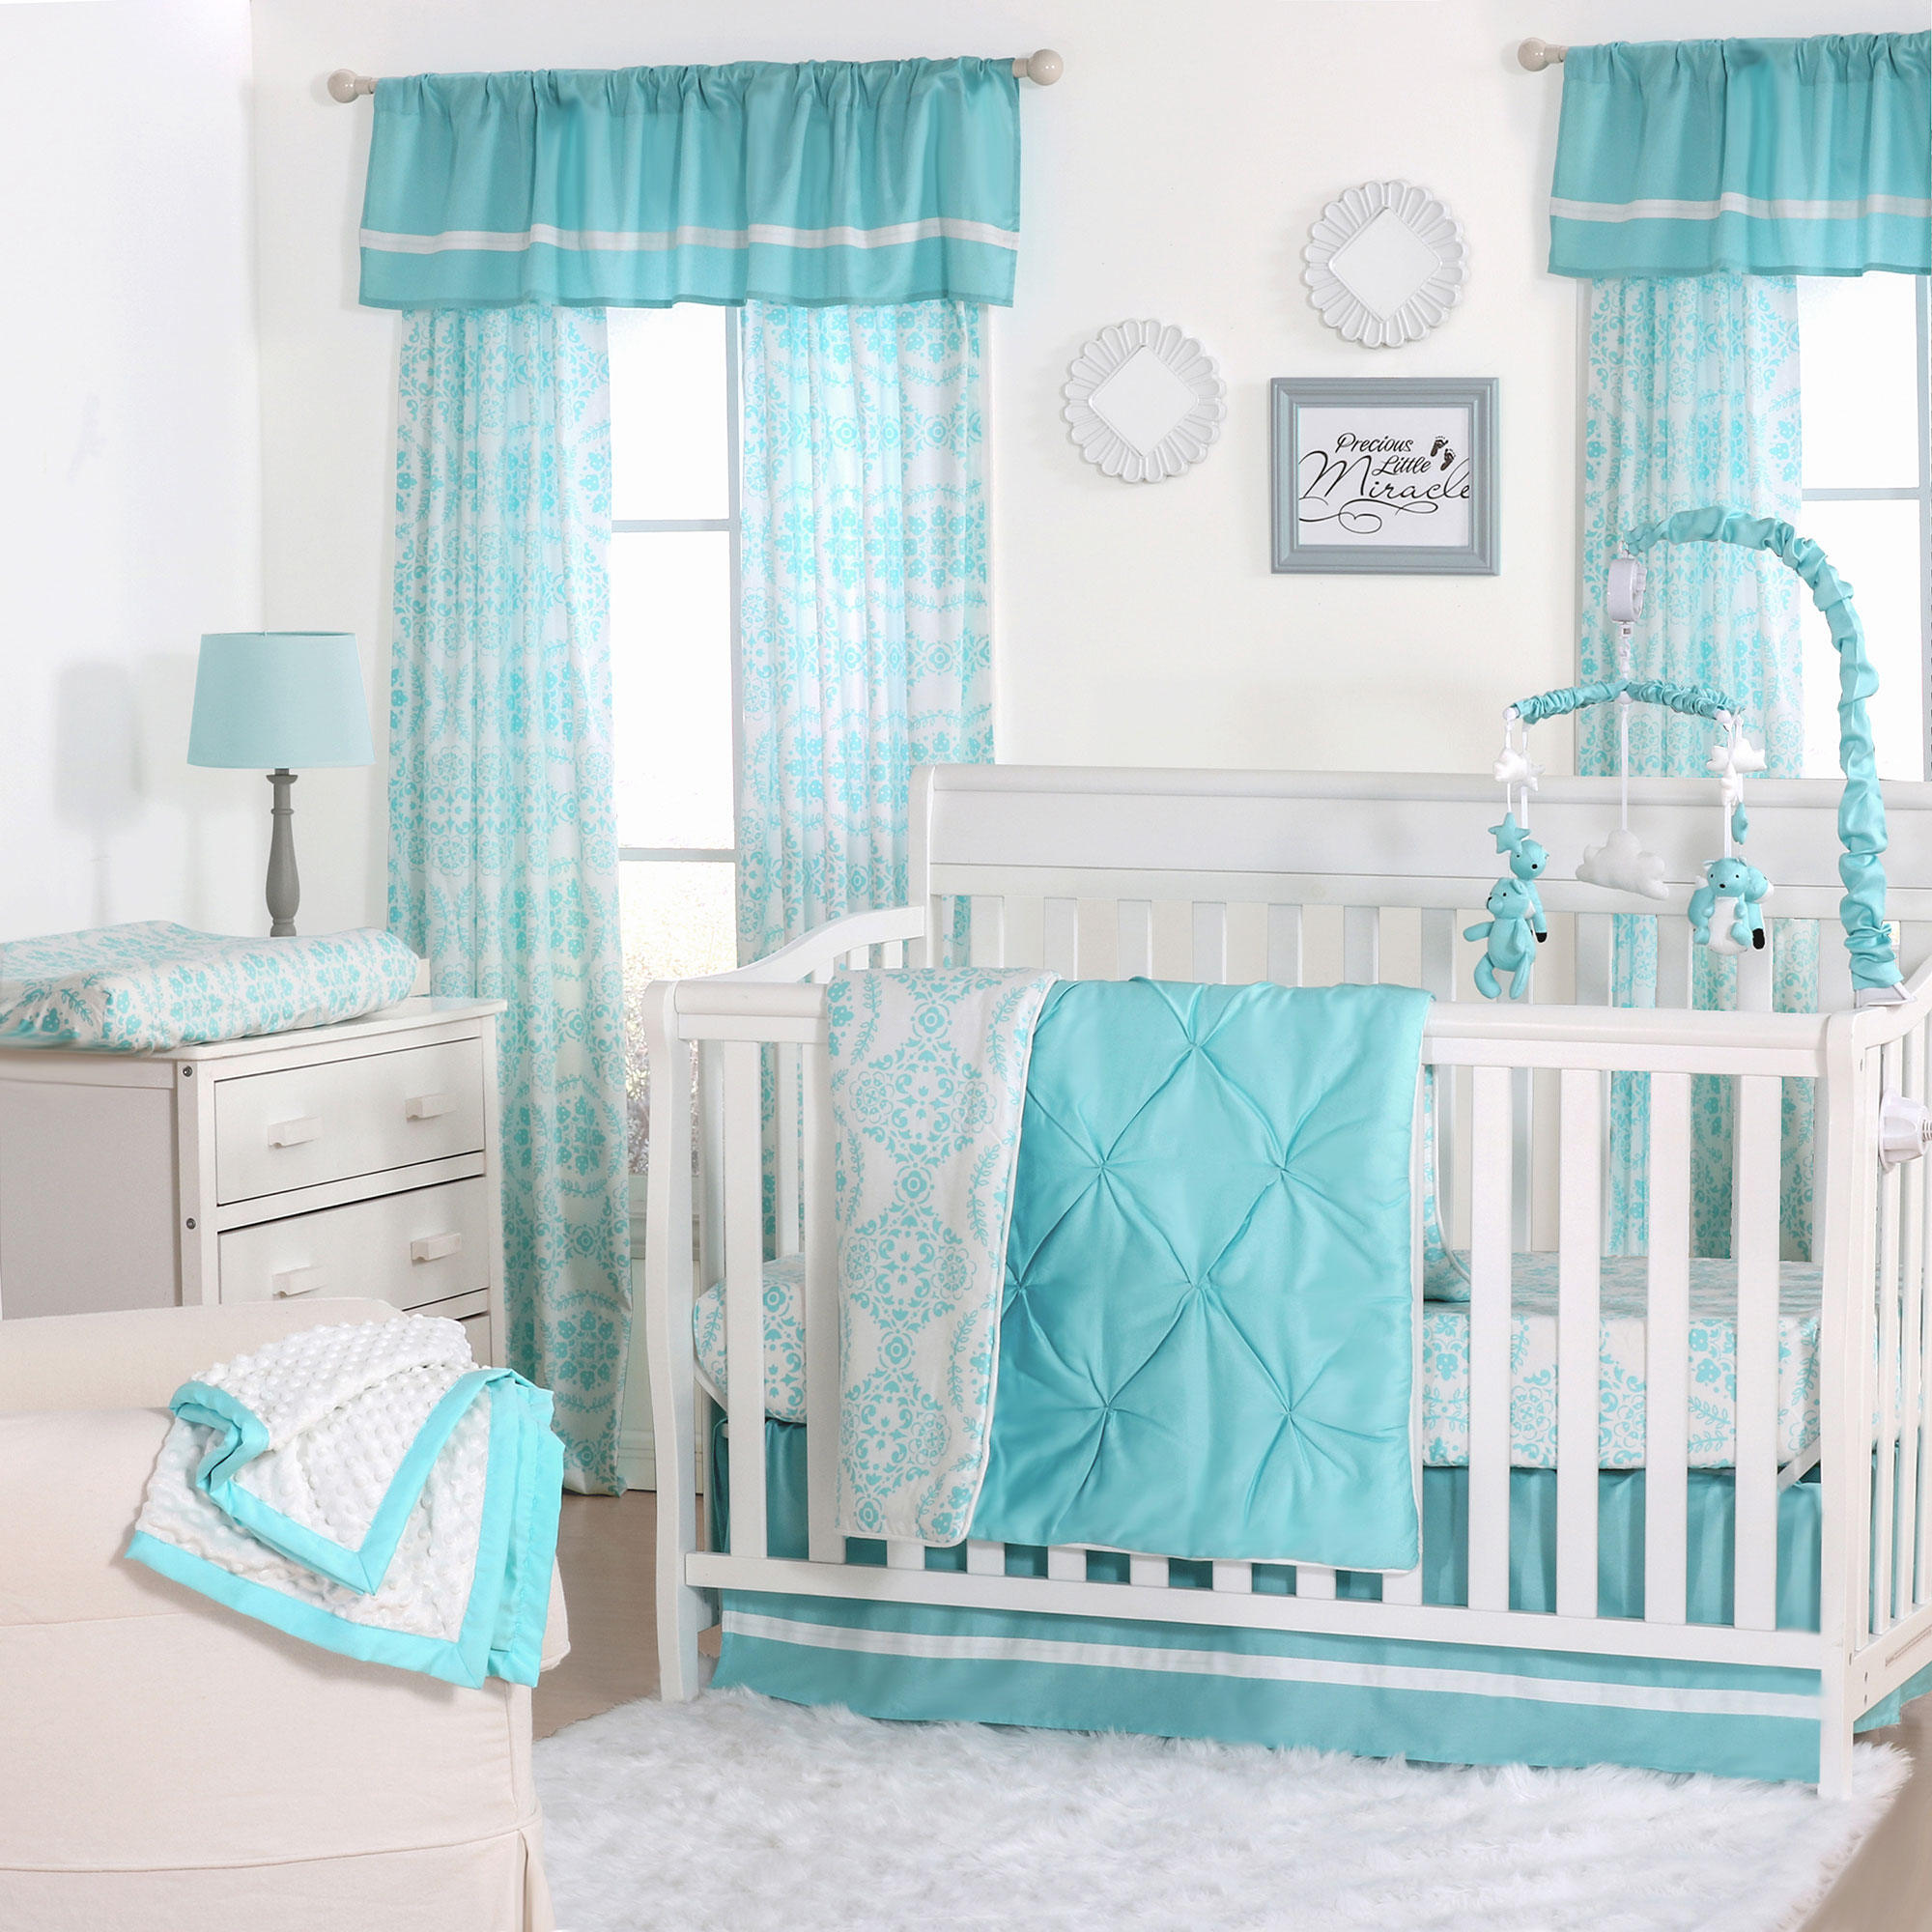 aqua collection baby skirt sheet paisley in bedding pixie crib p teal cribs